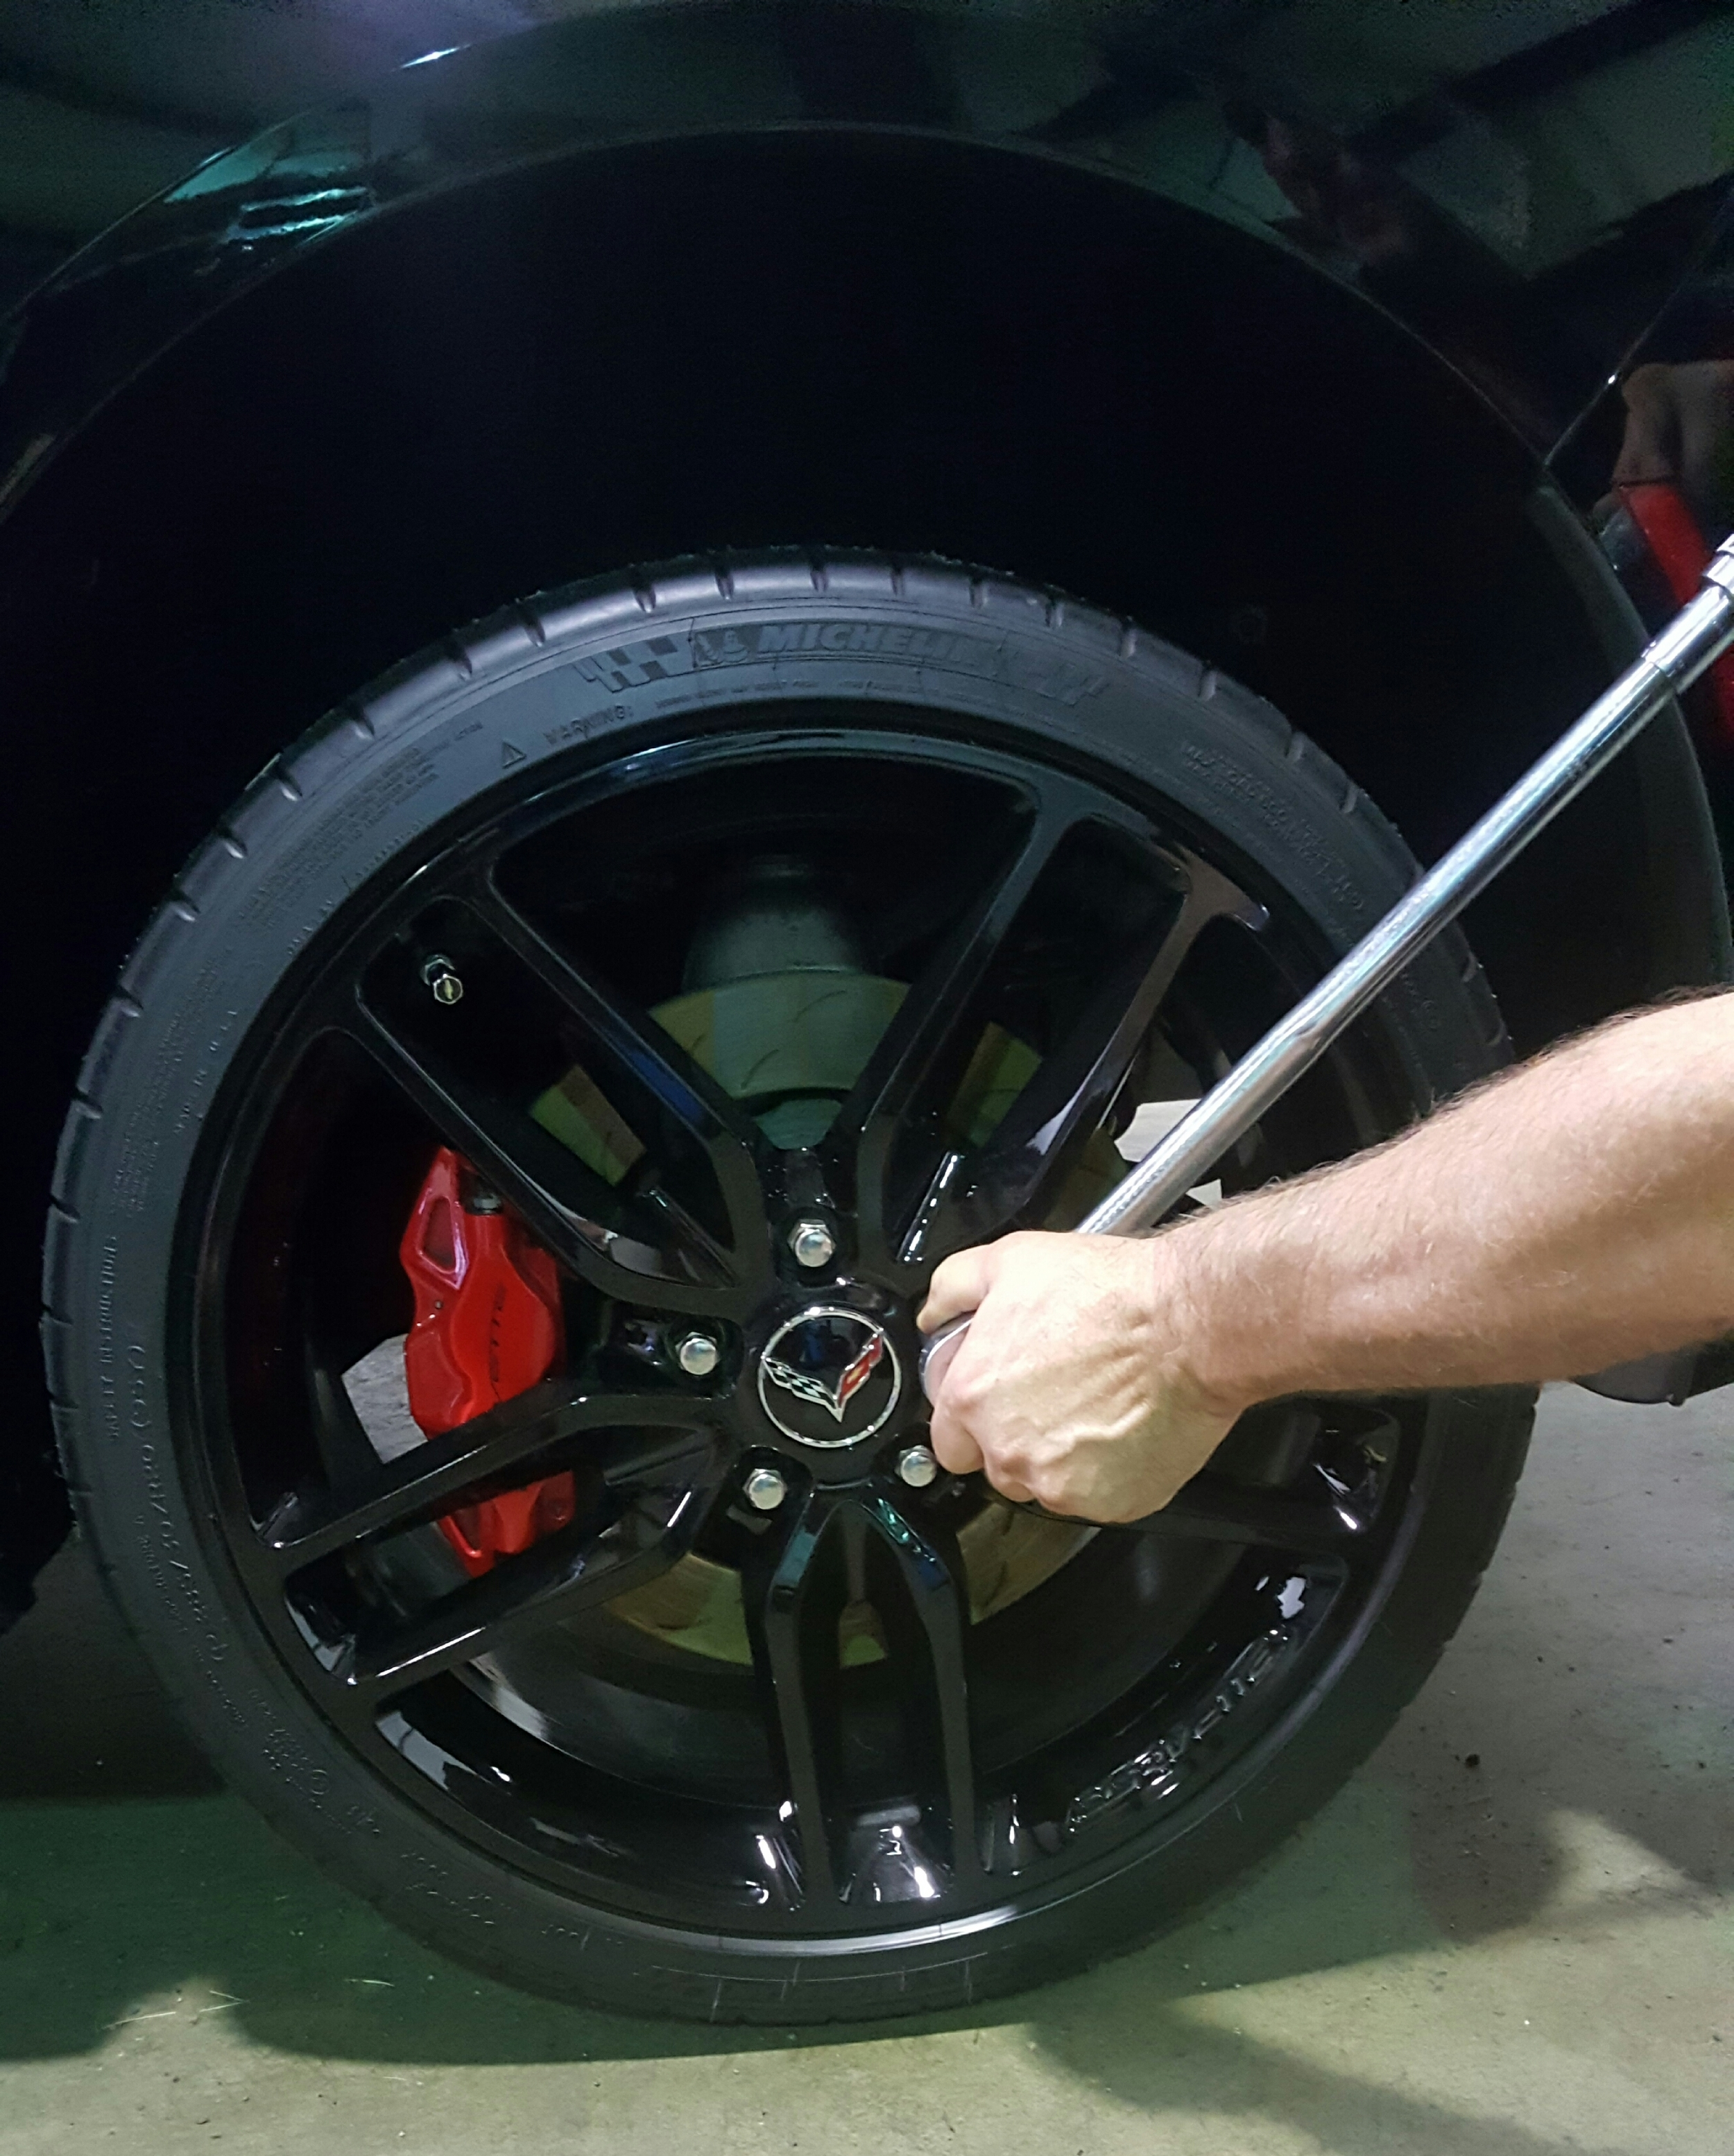 Every single wheel that is removed at Ace's Automotive Complete Auto Care is hand torqued to factory specs to insure there are no future problems such as brake rotor warping or lug stud or nut thread damage.